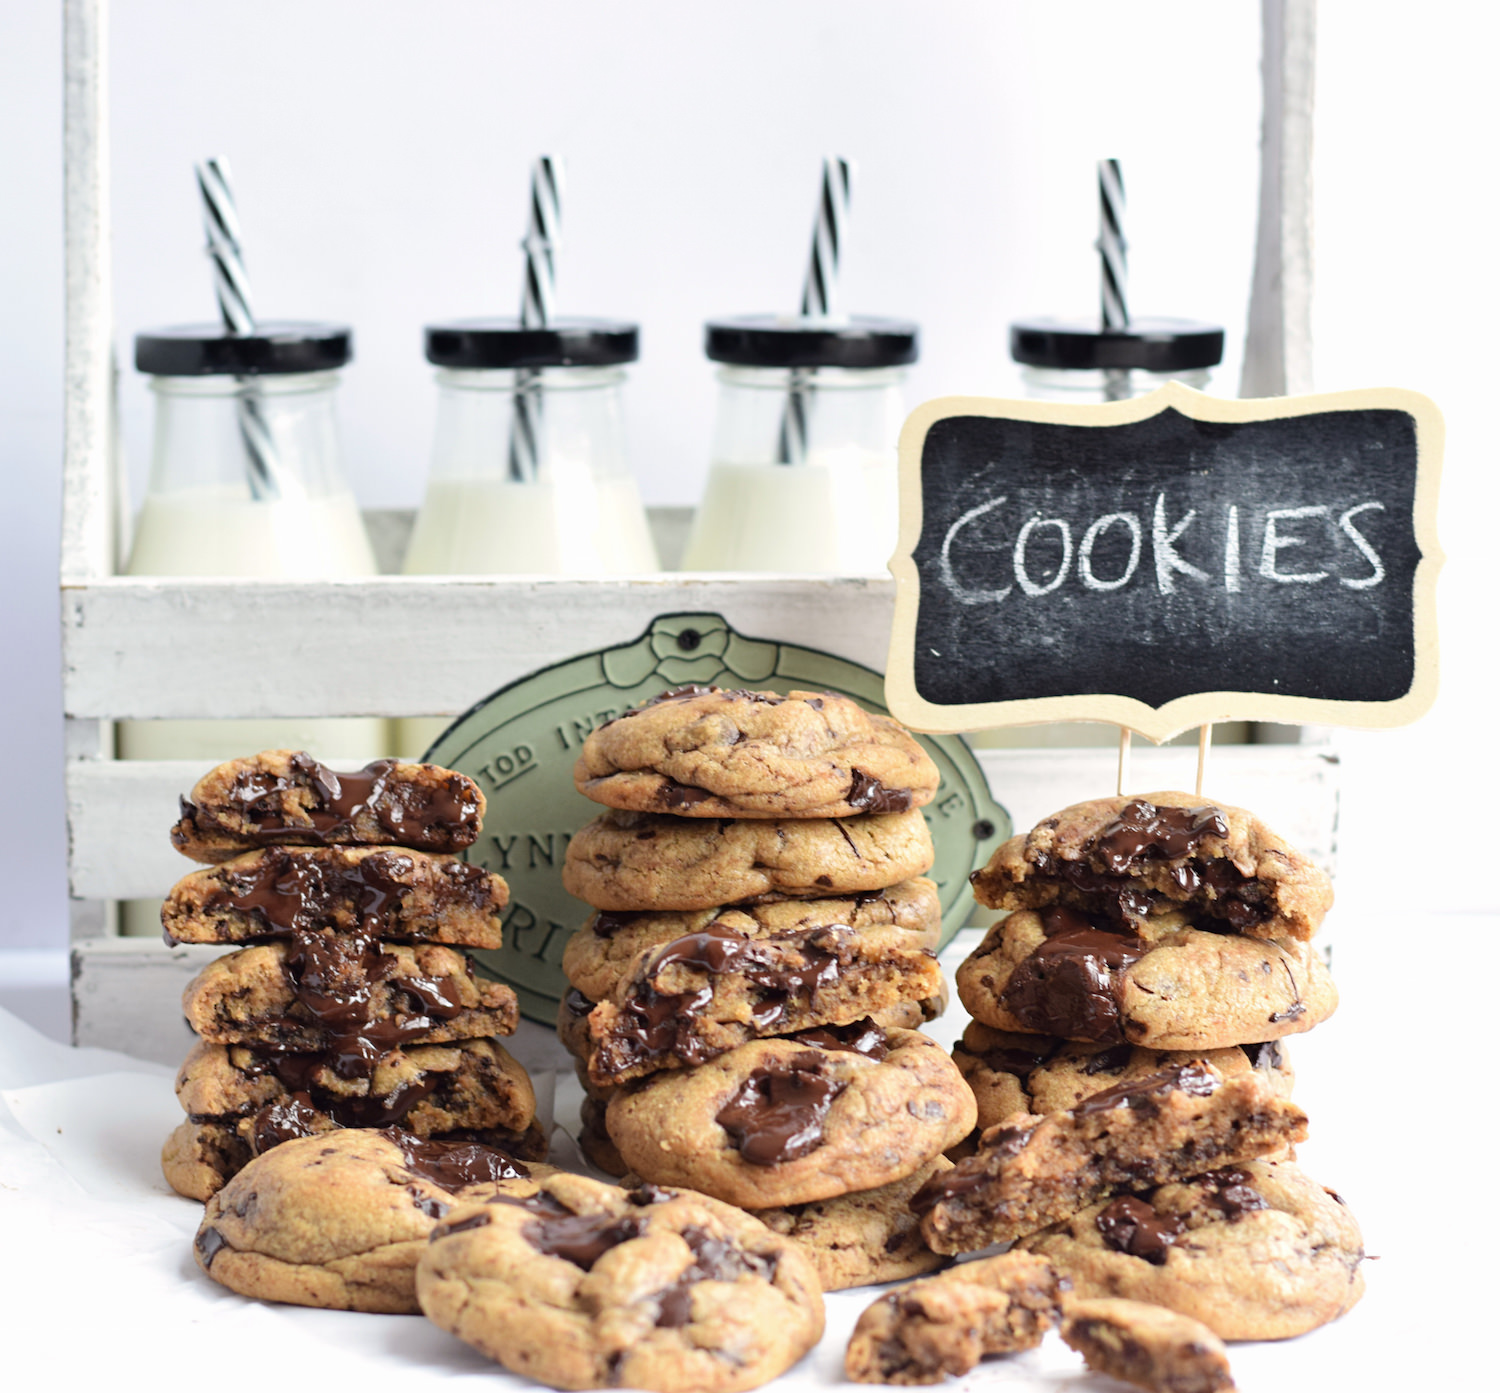 The BEST Chocolate Chip Cookies – soft, gooey, loads of chocolate + caramel undertones from the brown butter.  Took over 25 batches to create! | TrufflesandTrends.com